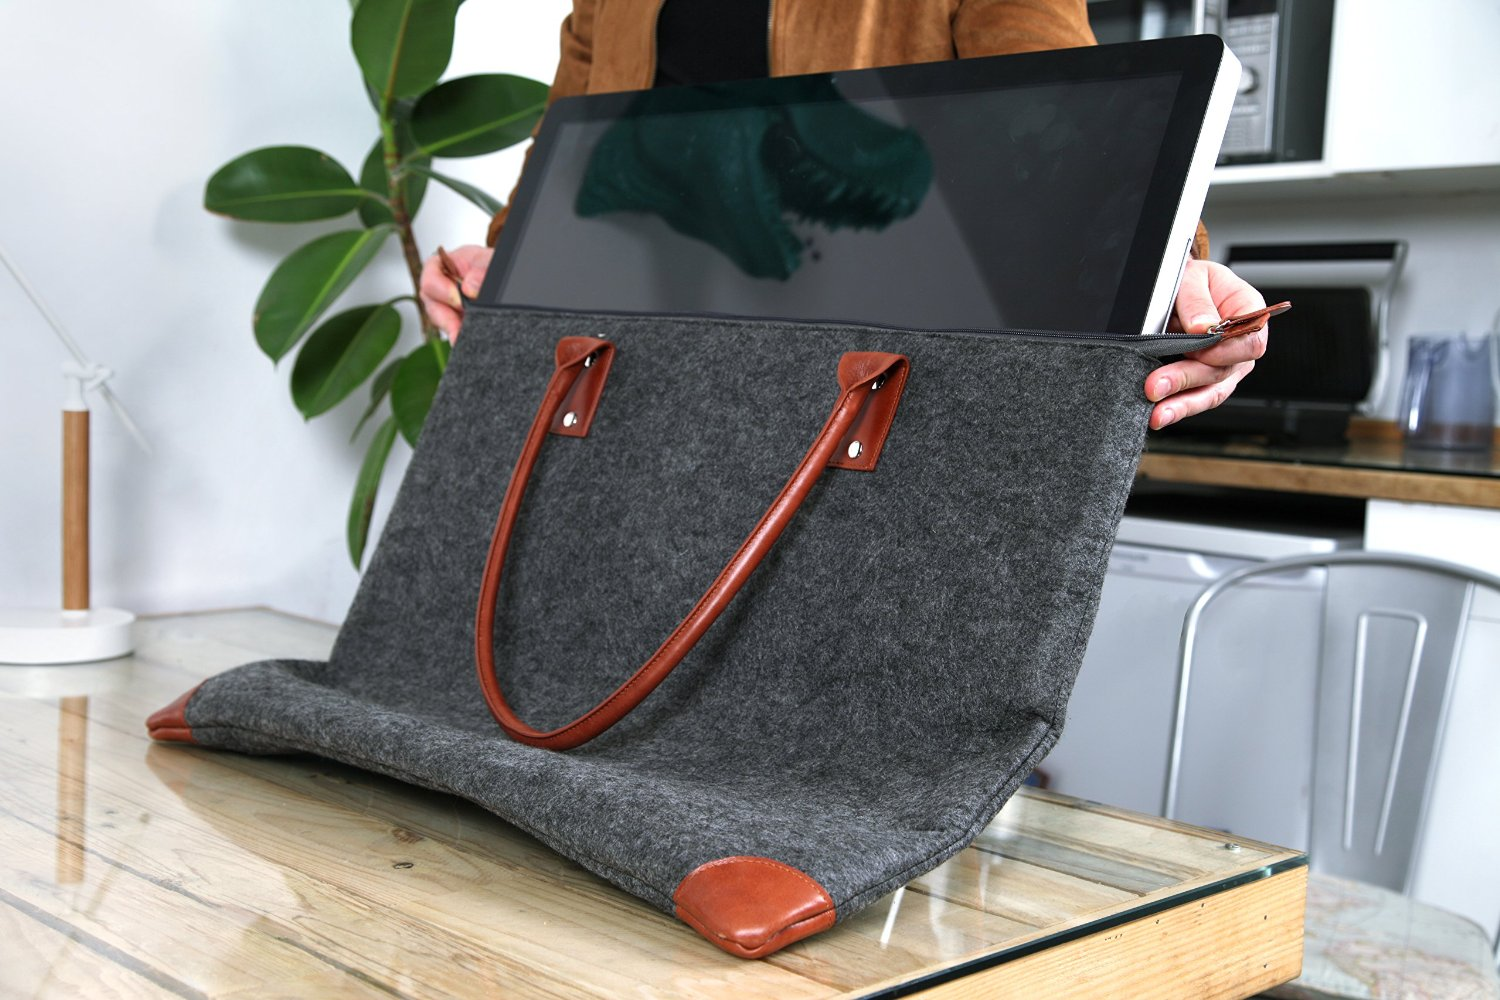 Lavolta Carrying Case for iMac